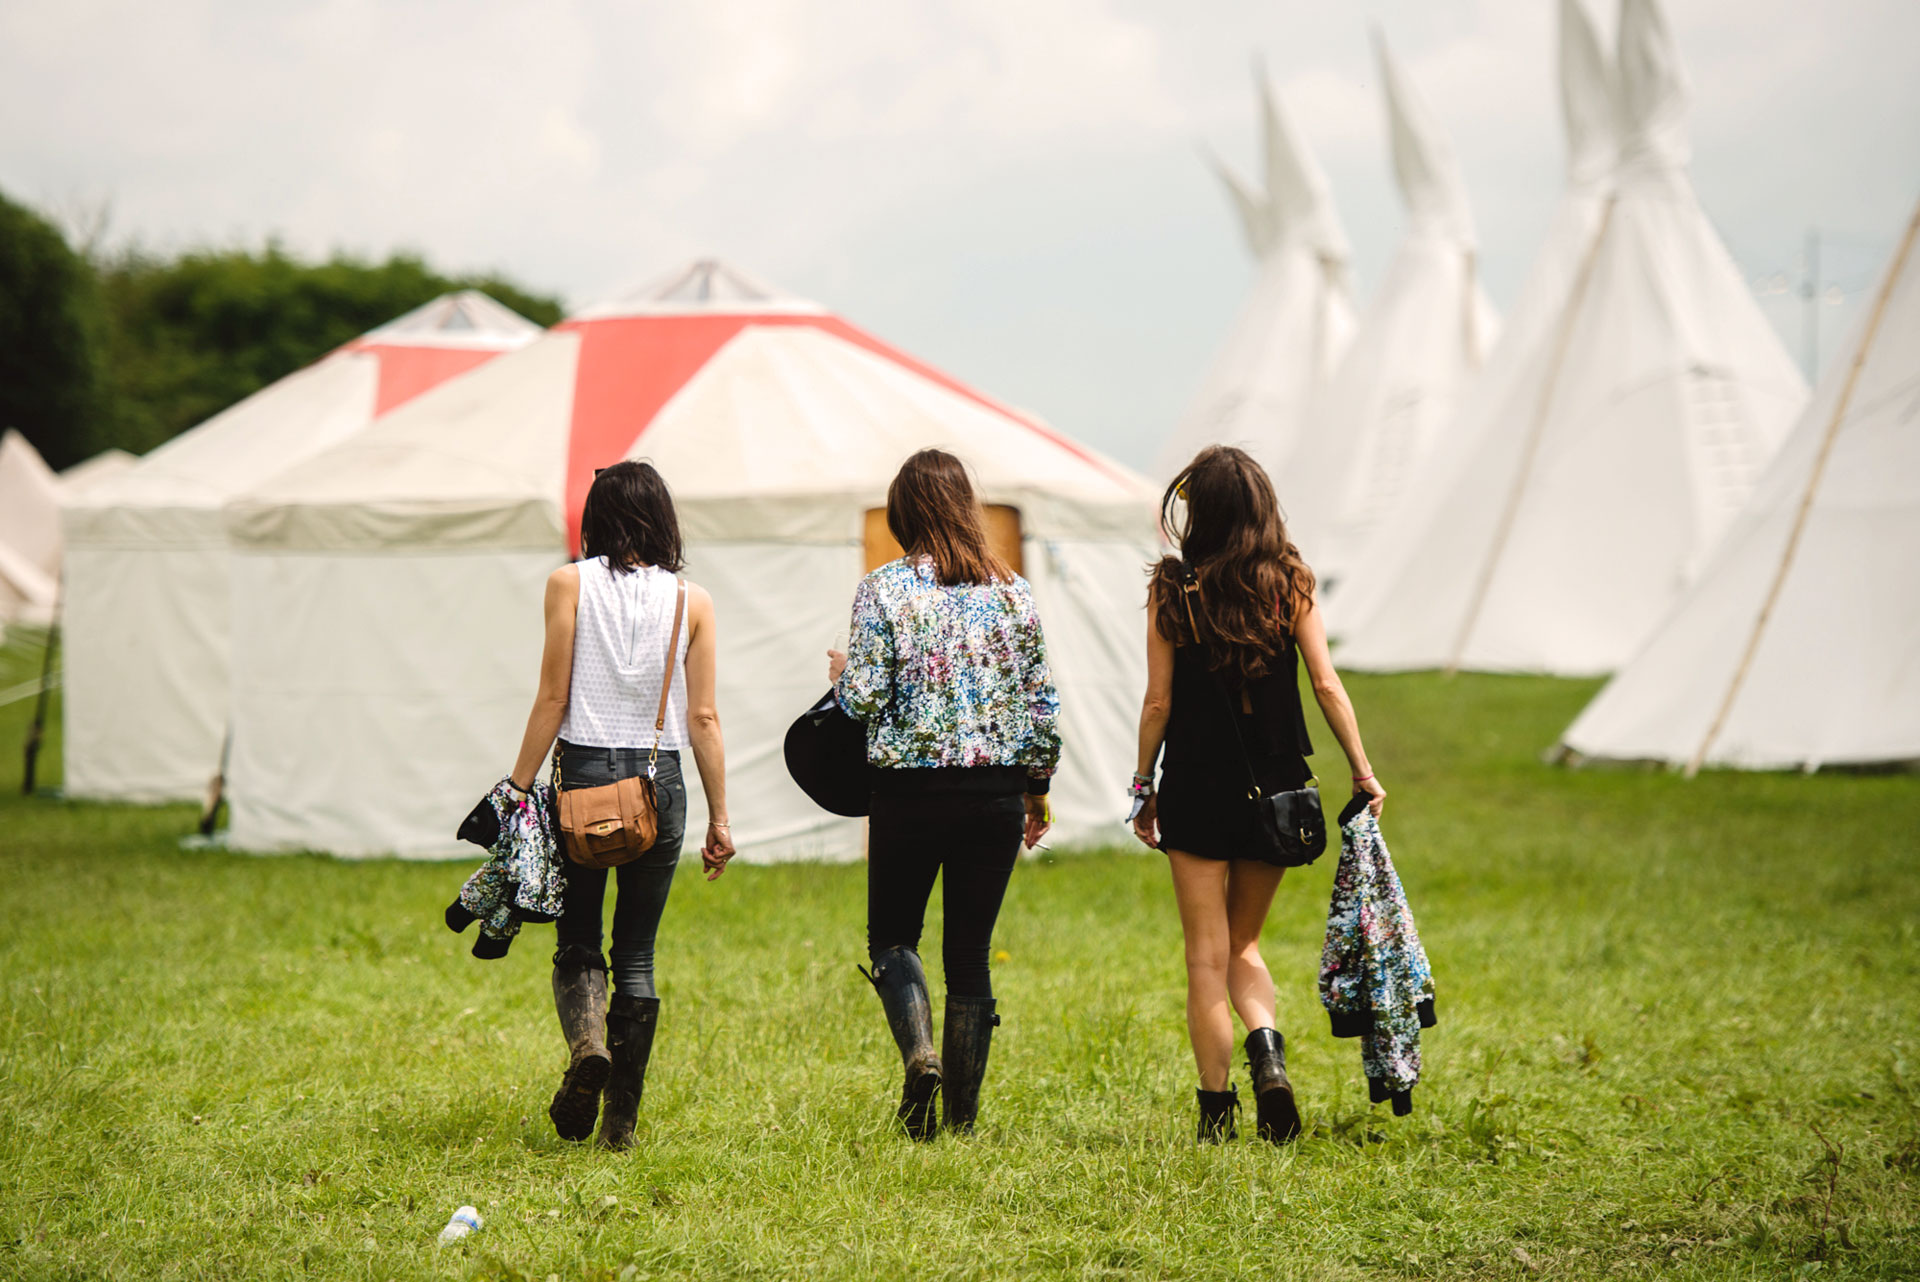 Guests walking to their luxury yurt accommodation at Pennard Orchard for Glastonbury Festival